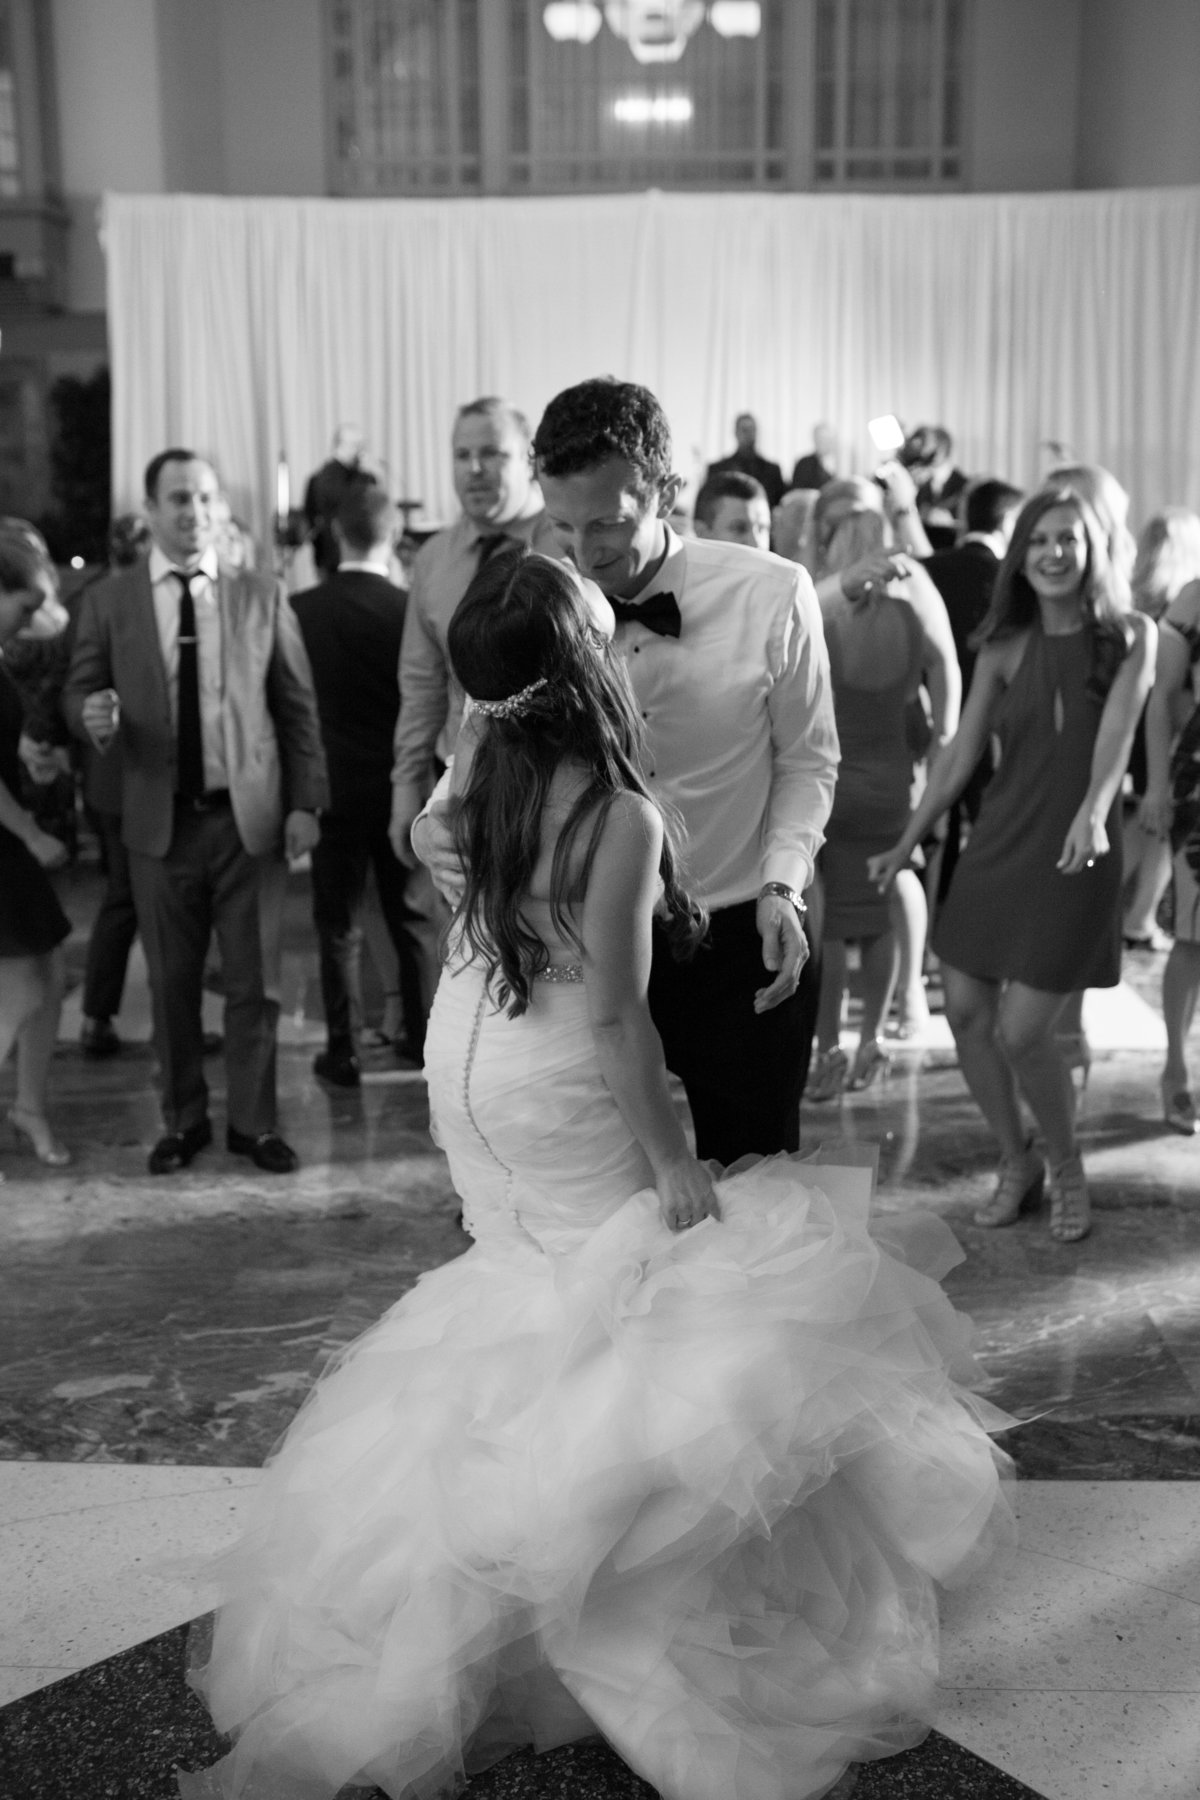 Nicole and Paul Wedding - Natalie Probst Photography 810